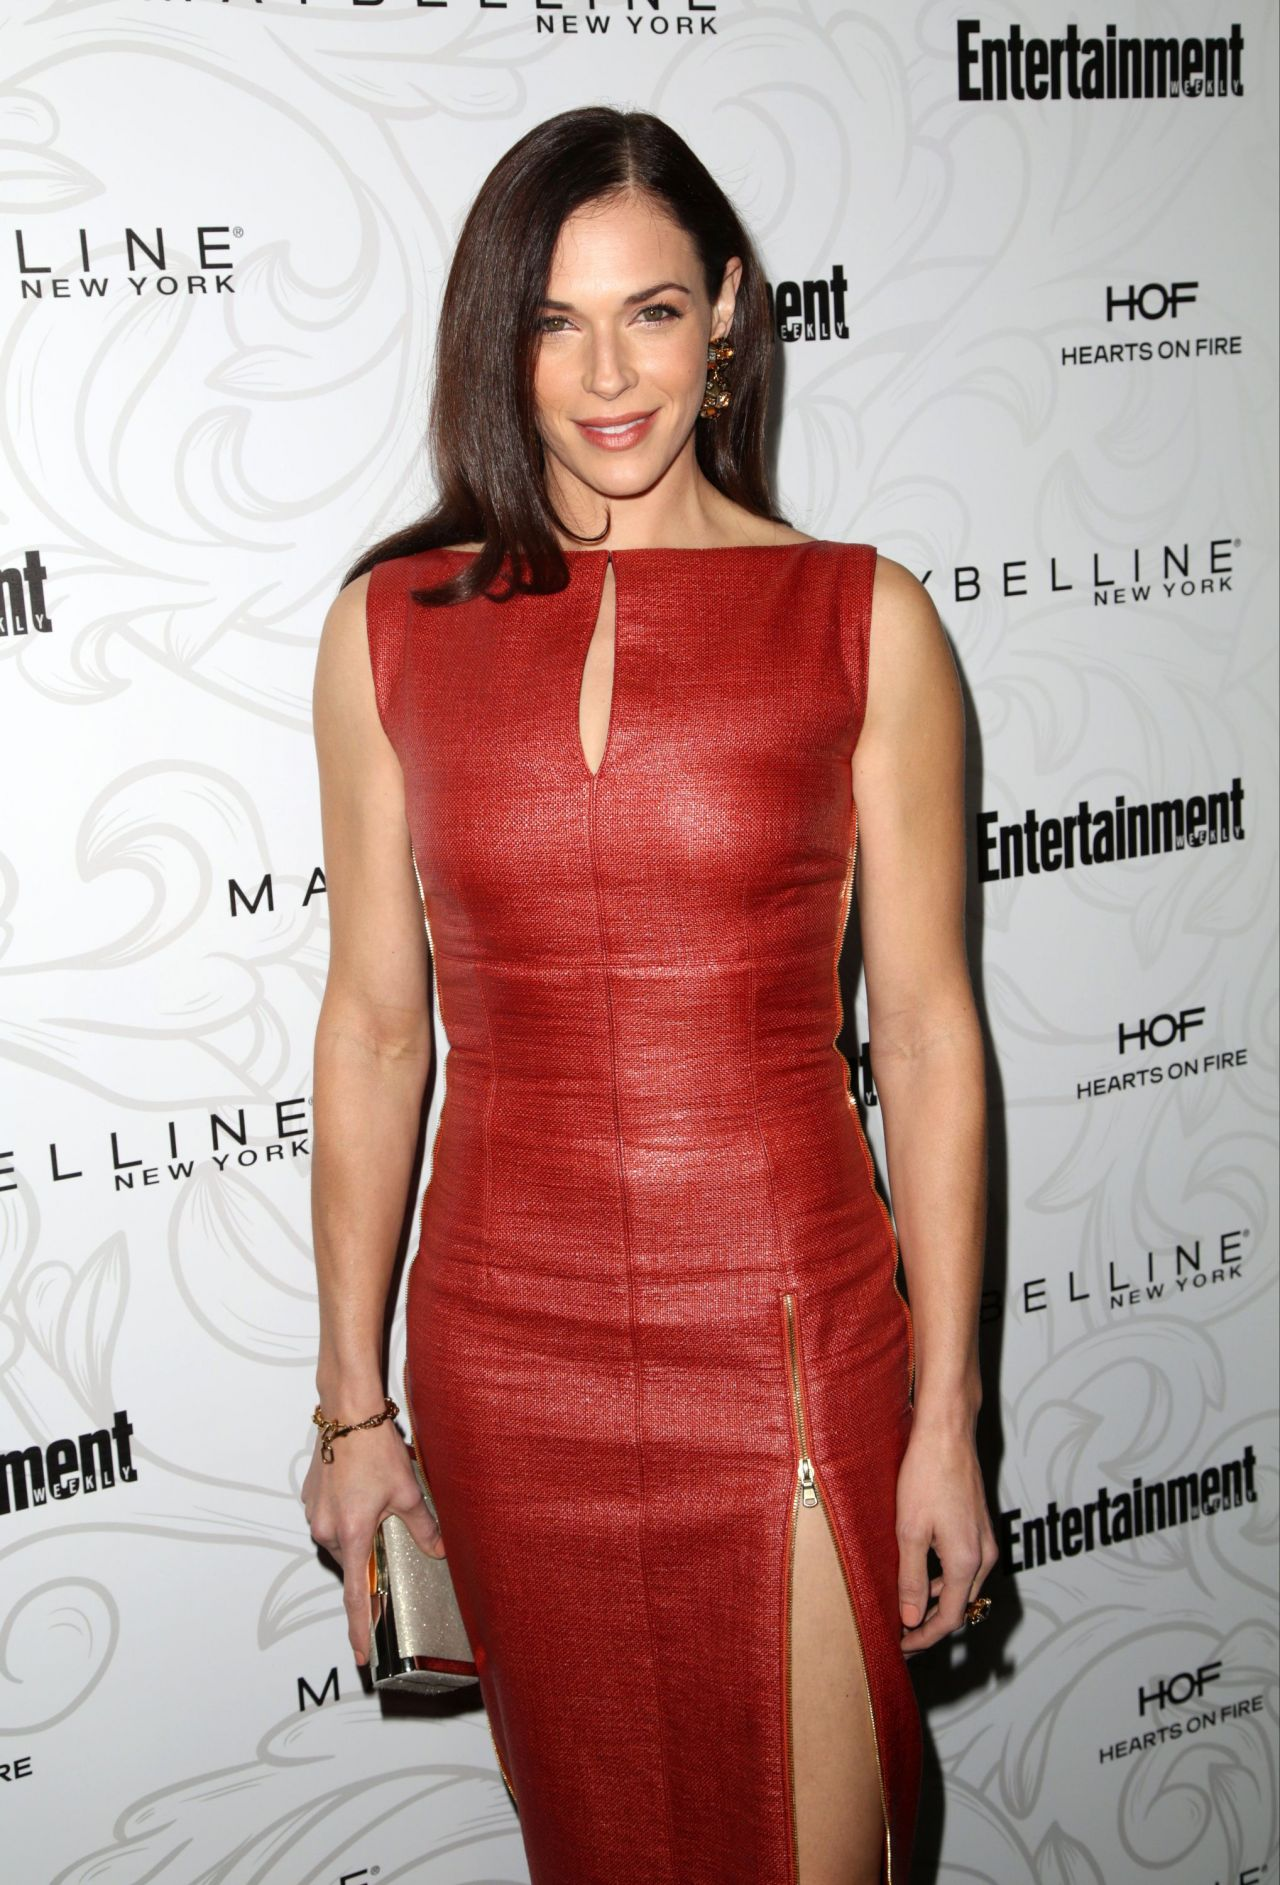 Amanda Righetti Latest Photos Celebmafia